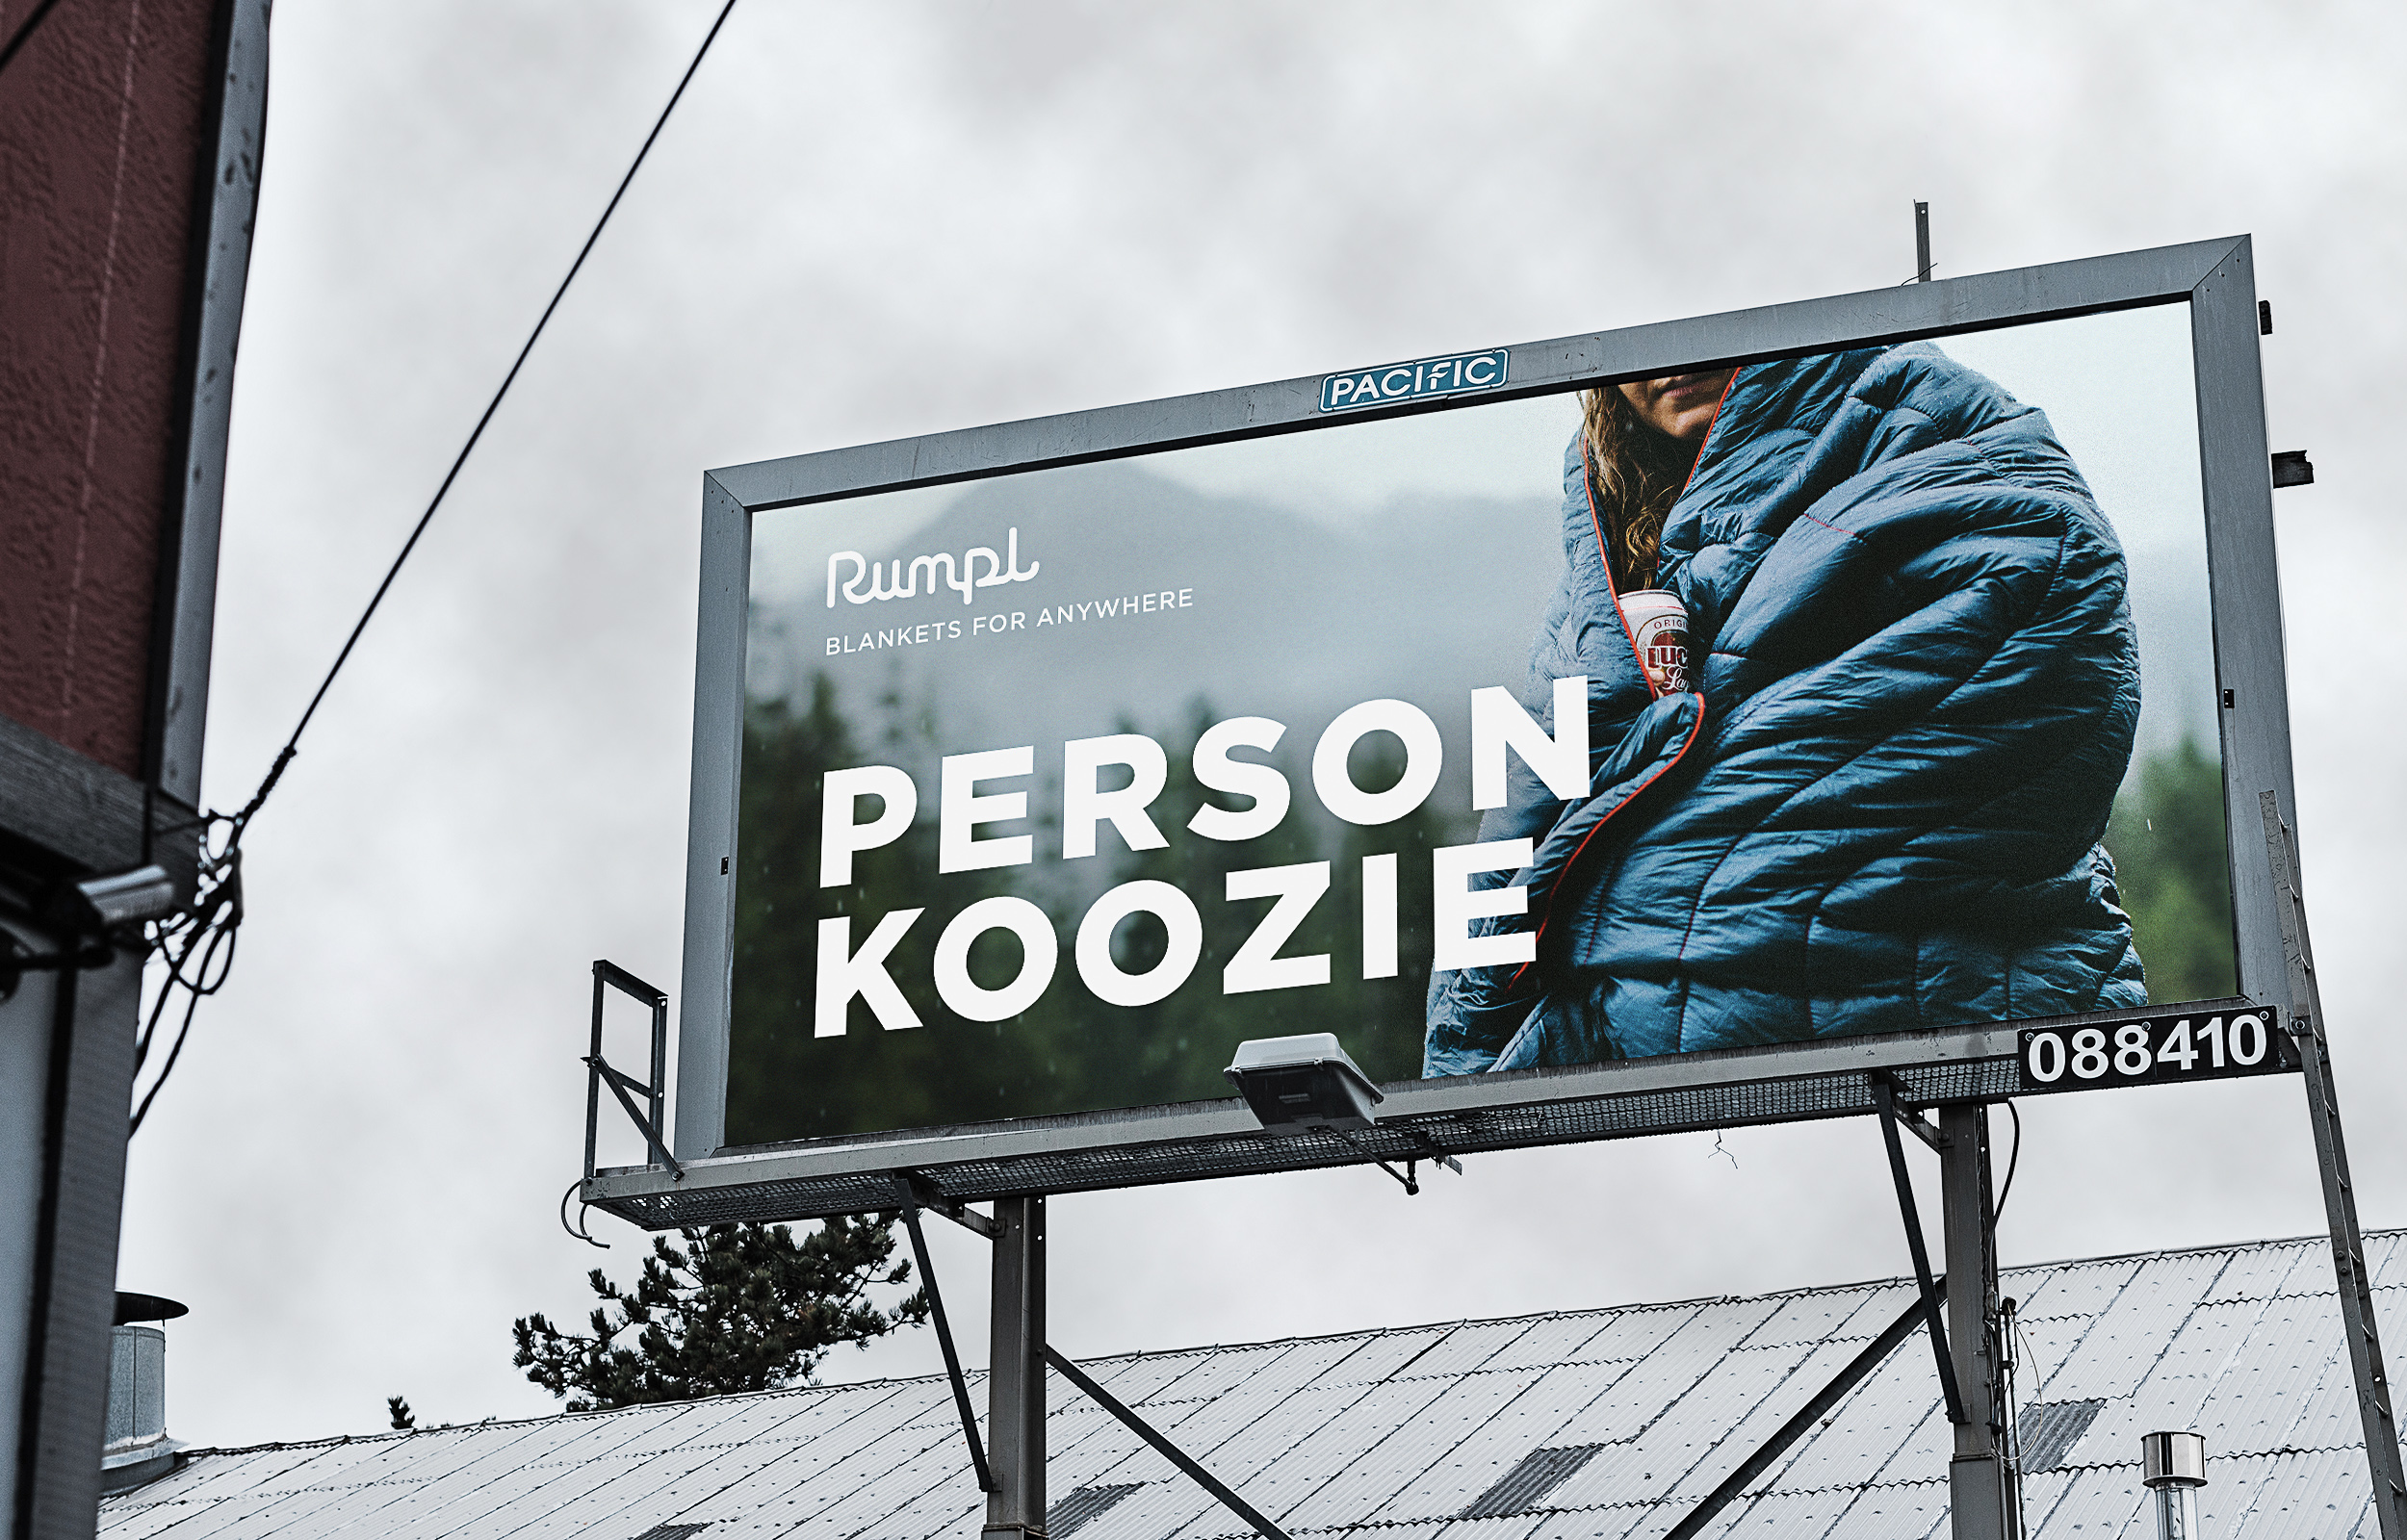 Rumpl Person Koozie Billboard